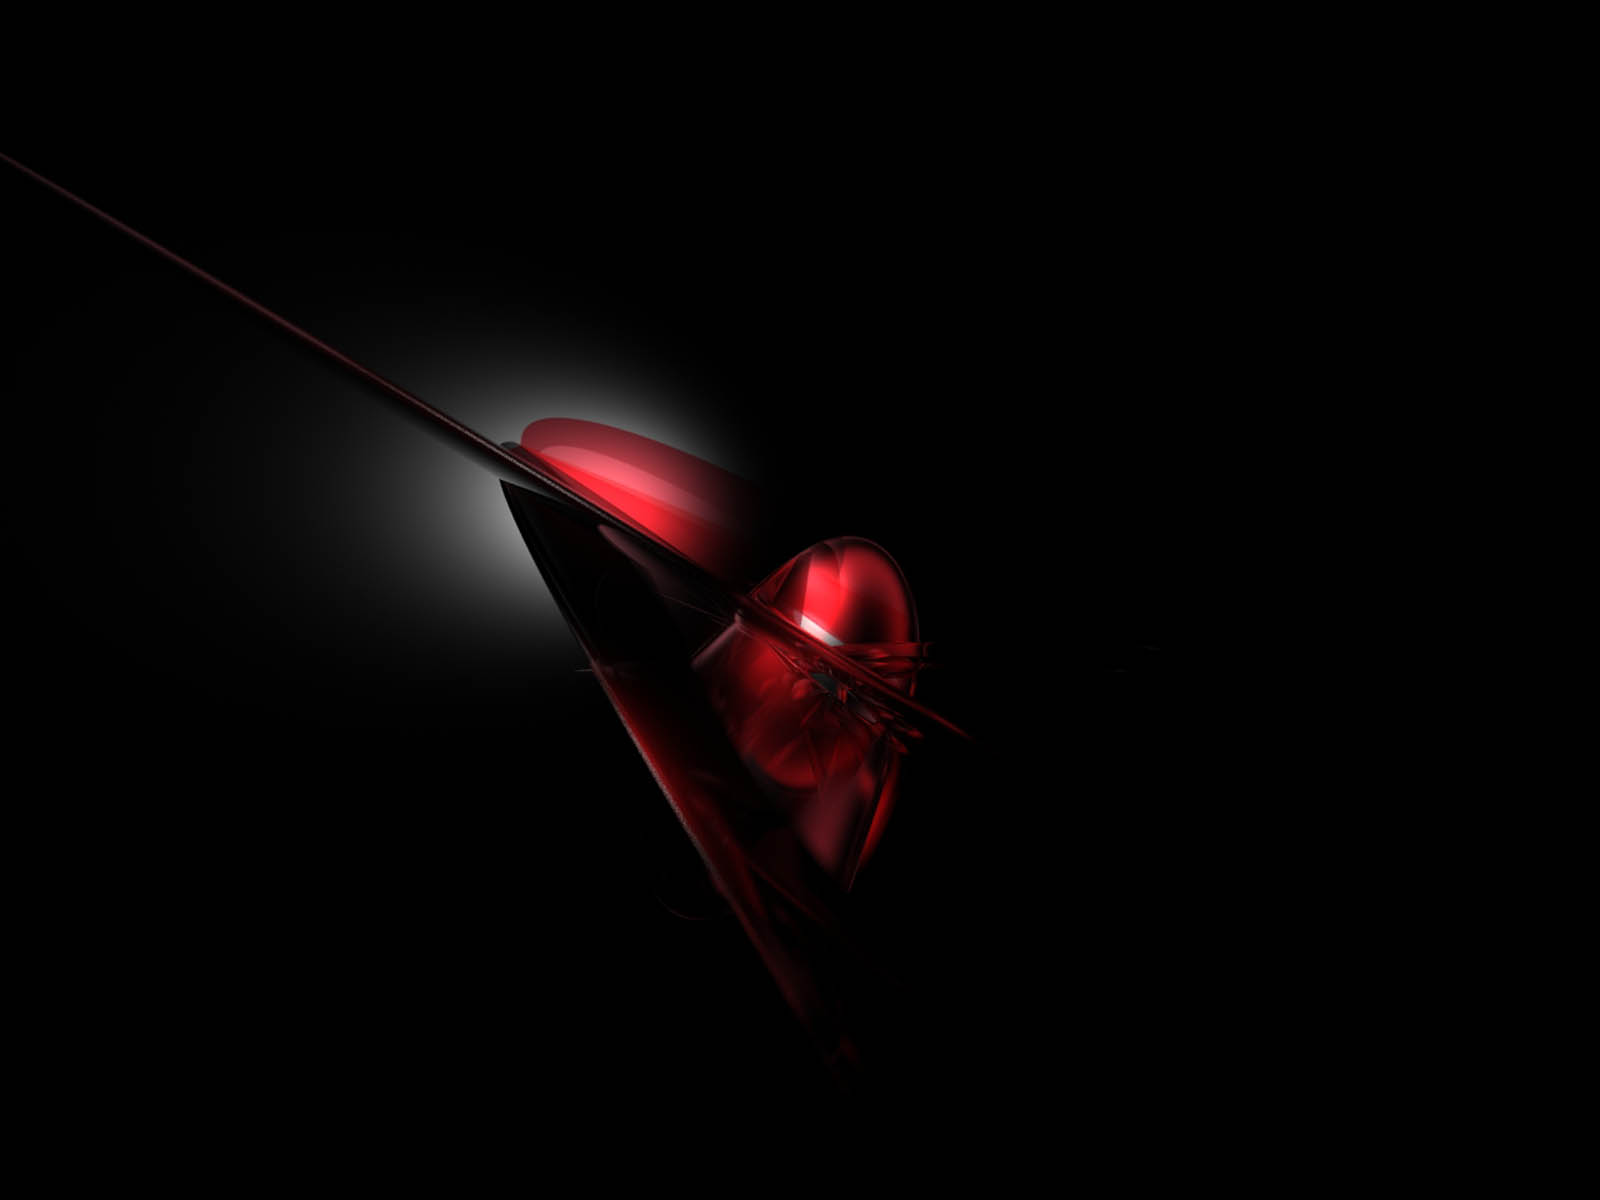 wallpapers Dark 3D Wallpapers 1600x1200